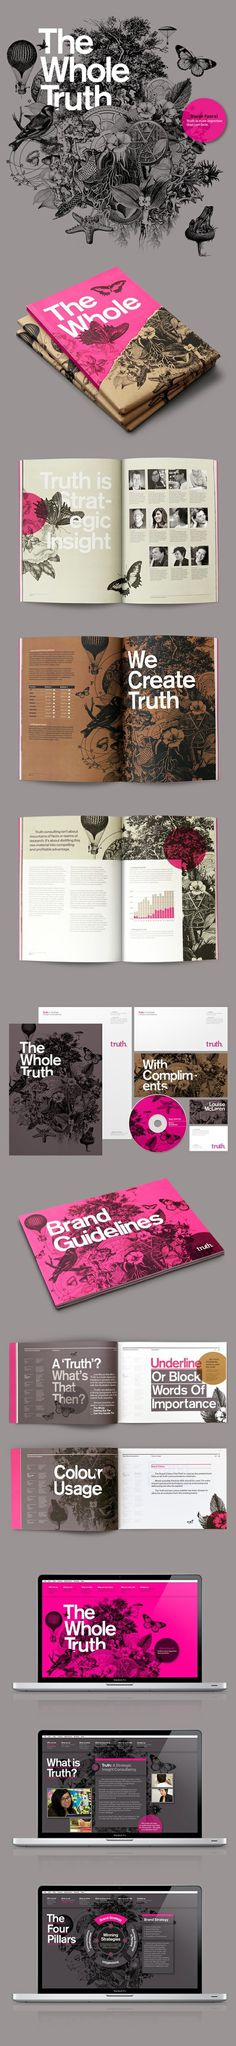 Truth Branding by Socio Design #truth #design #socio #branding